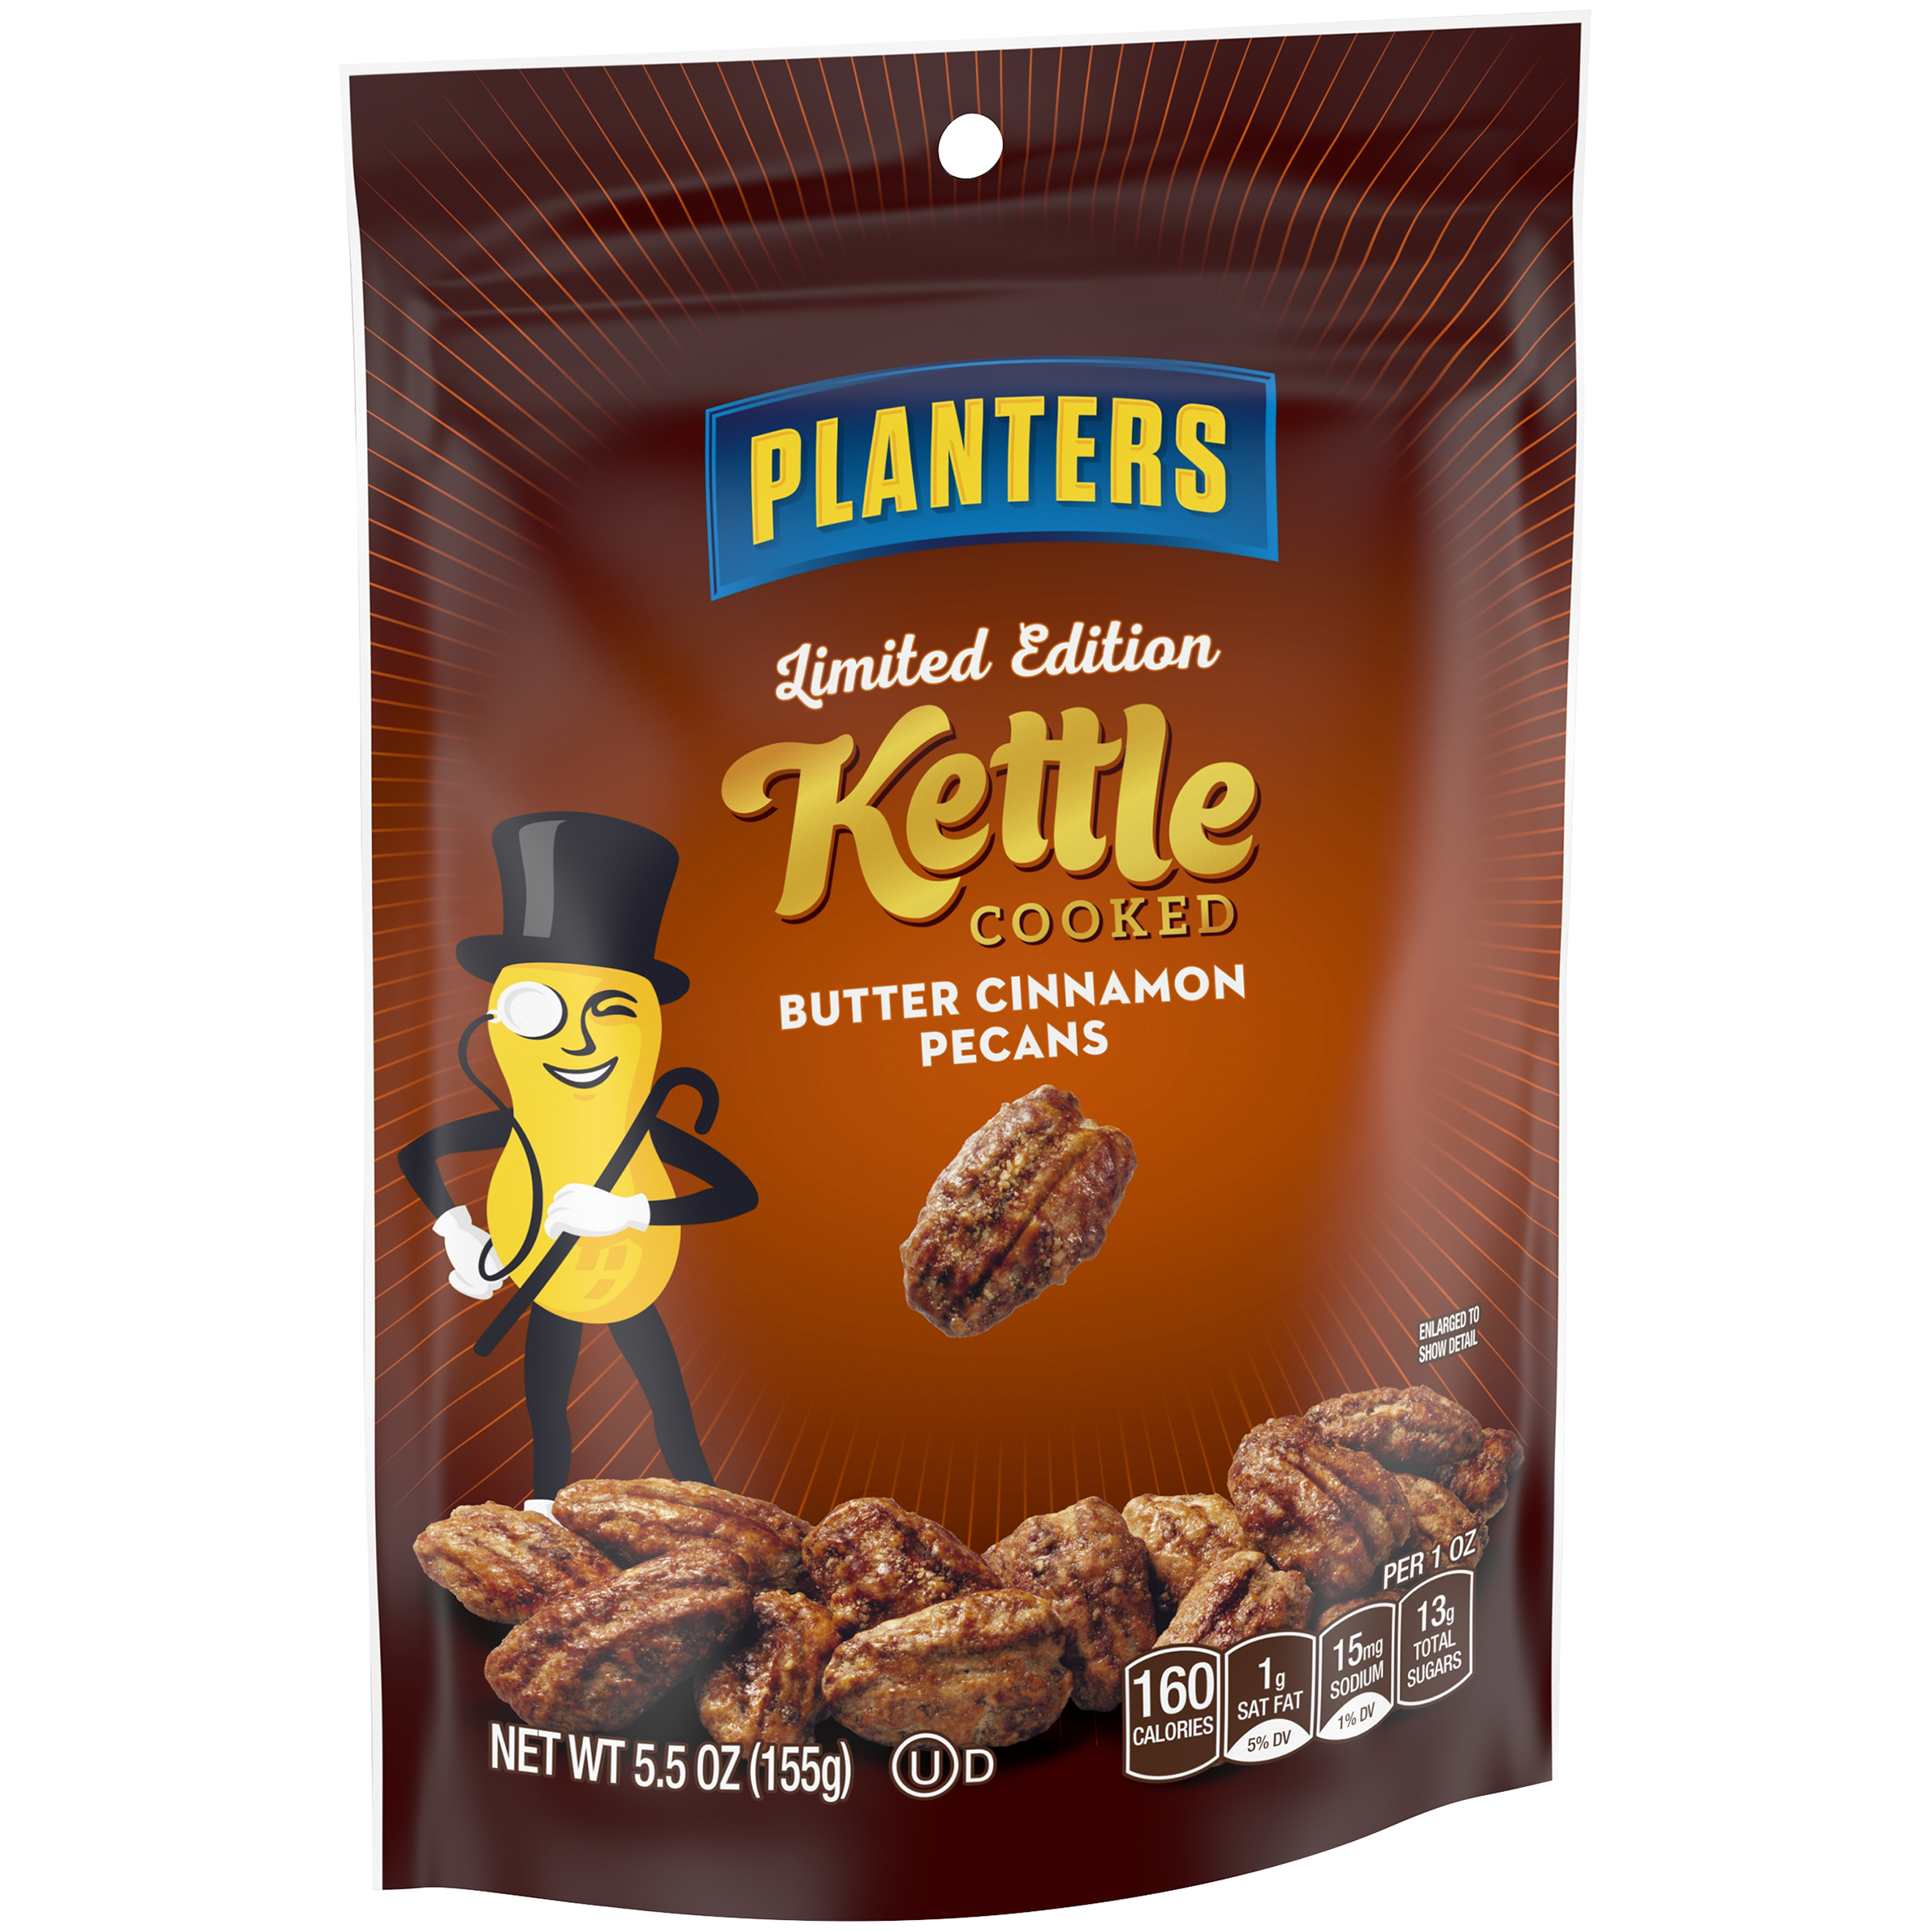 Planters Limited Edition Kettle Cooked Butter Cinnamon Pecans 5 5